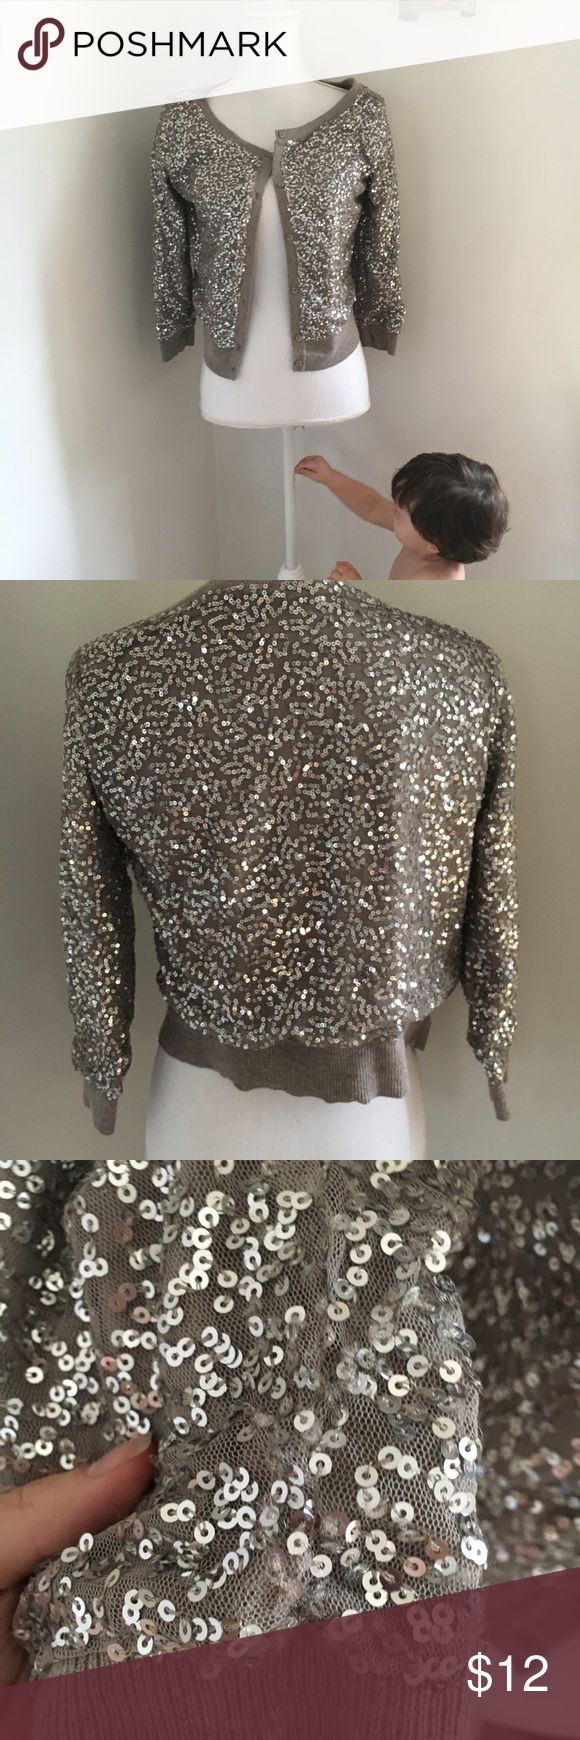 American Eagle sequin cardigan Gray American eagle sequin cardigan. Fair condition, may be a few loose strings or fuzzy. Still adorable American Eagle Outfitters Sweaters Cardigans